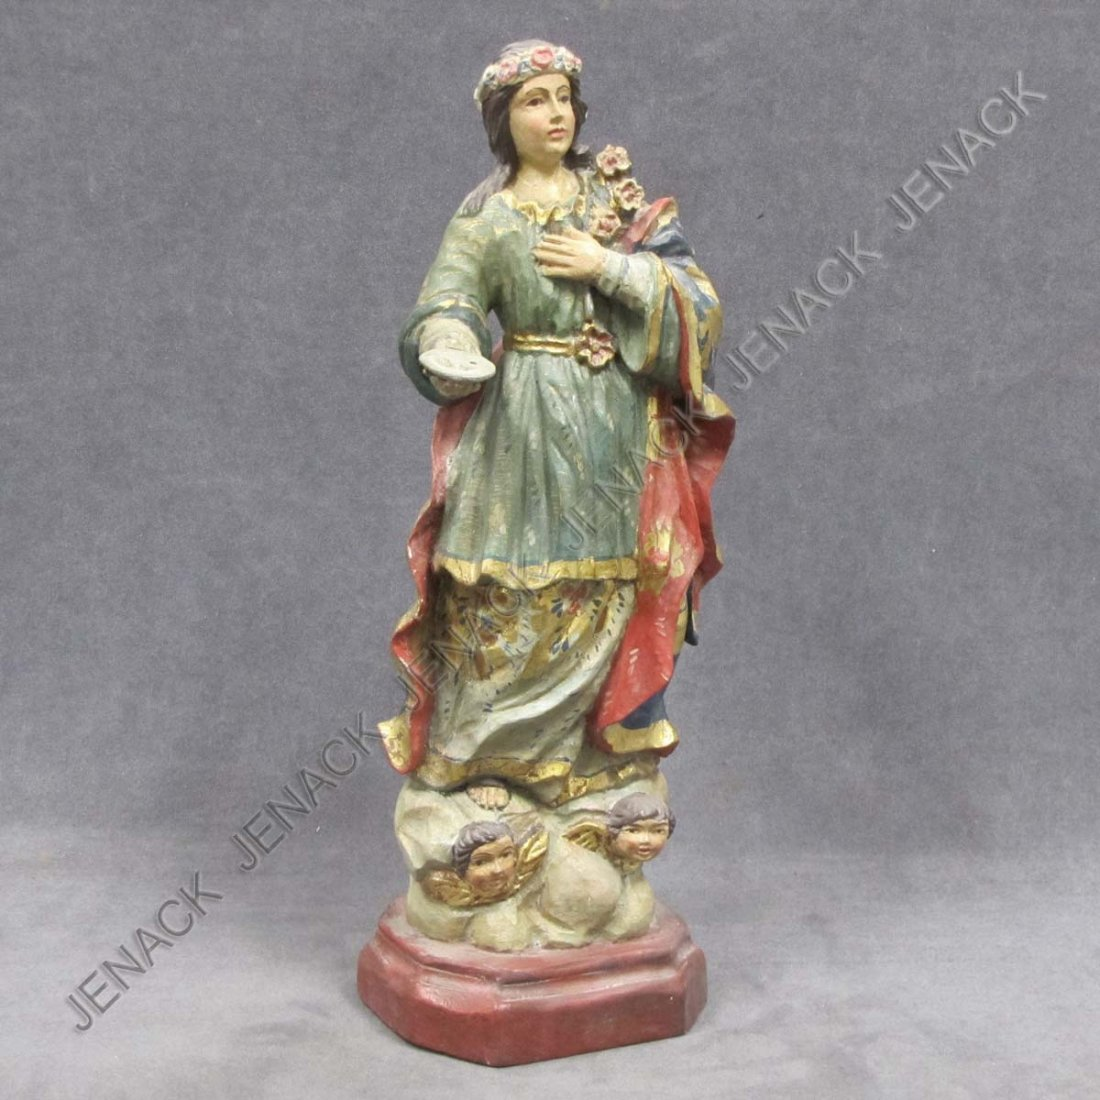 24: SPANISH COLONIAL CARVED AND PAINTED SANTOS FIGURE